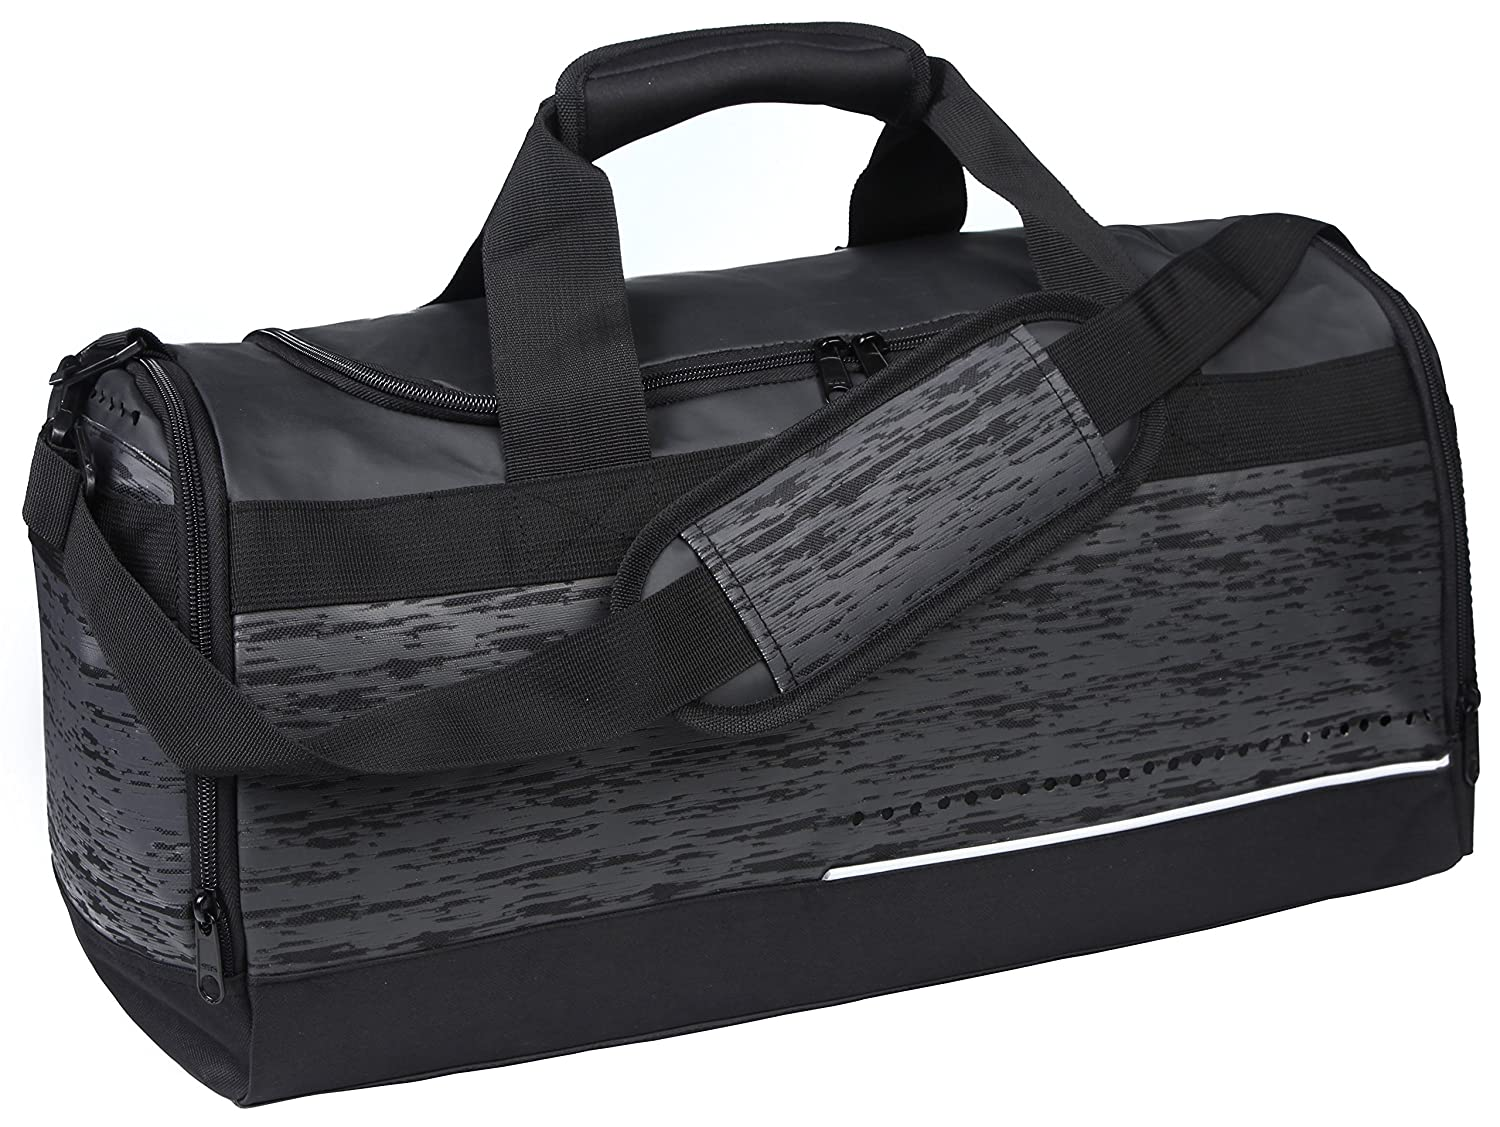 MIER Mens Holdall Gym Bag Sports Duffel Bag with Shoes Compartment for  Weekender, Overnight, Carry on, 40L, Black  Amazon.co.uk  Luggage 836bf88cbf